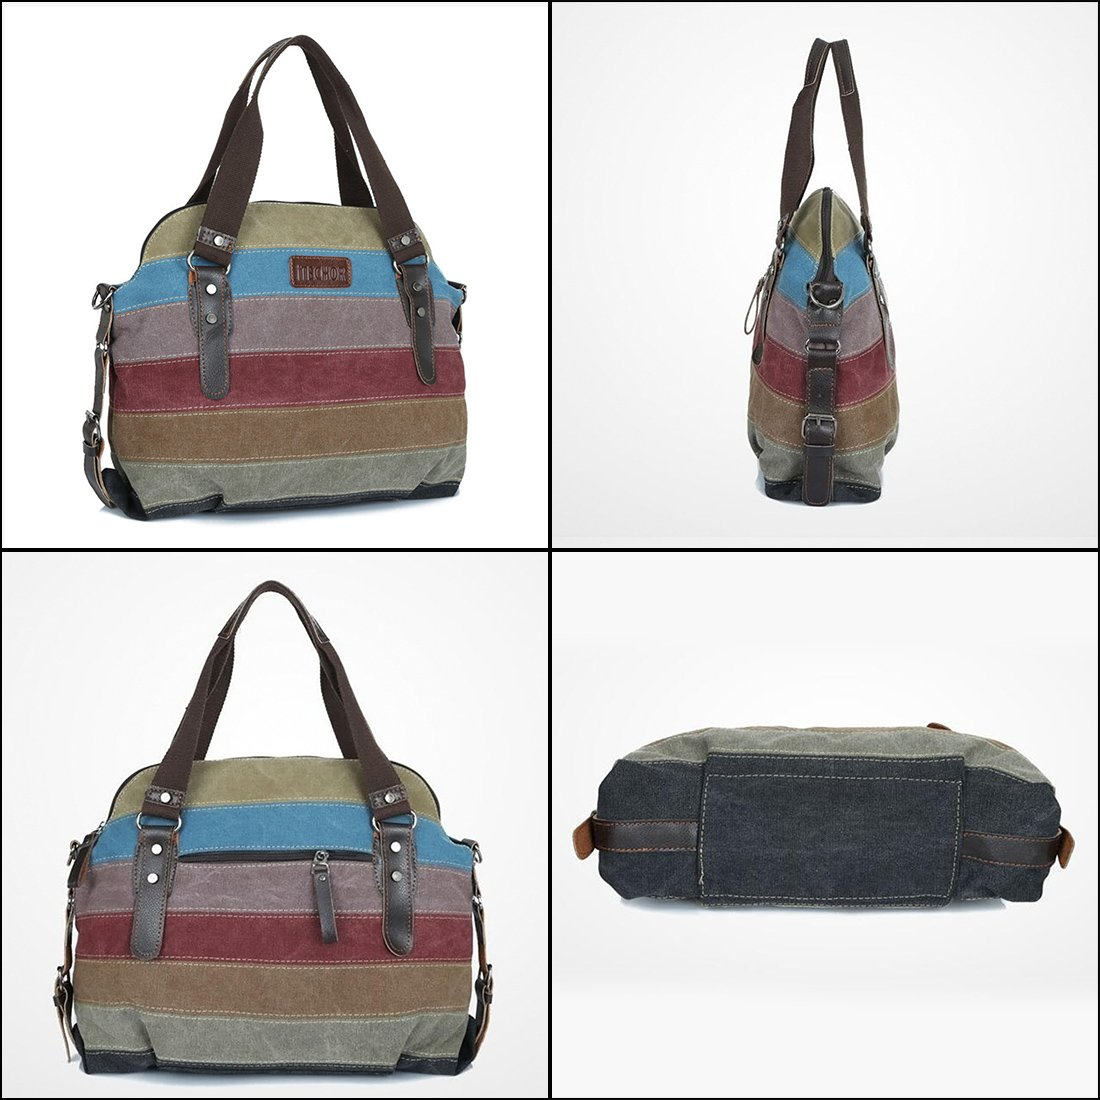 Striped Tote Bag, iTECHOR Multi-Color Striped Canvas Totes Handbag Women's  Hobos and Shoulder Cross-body Bags: Amazon.co.uk: Luggage